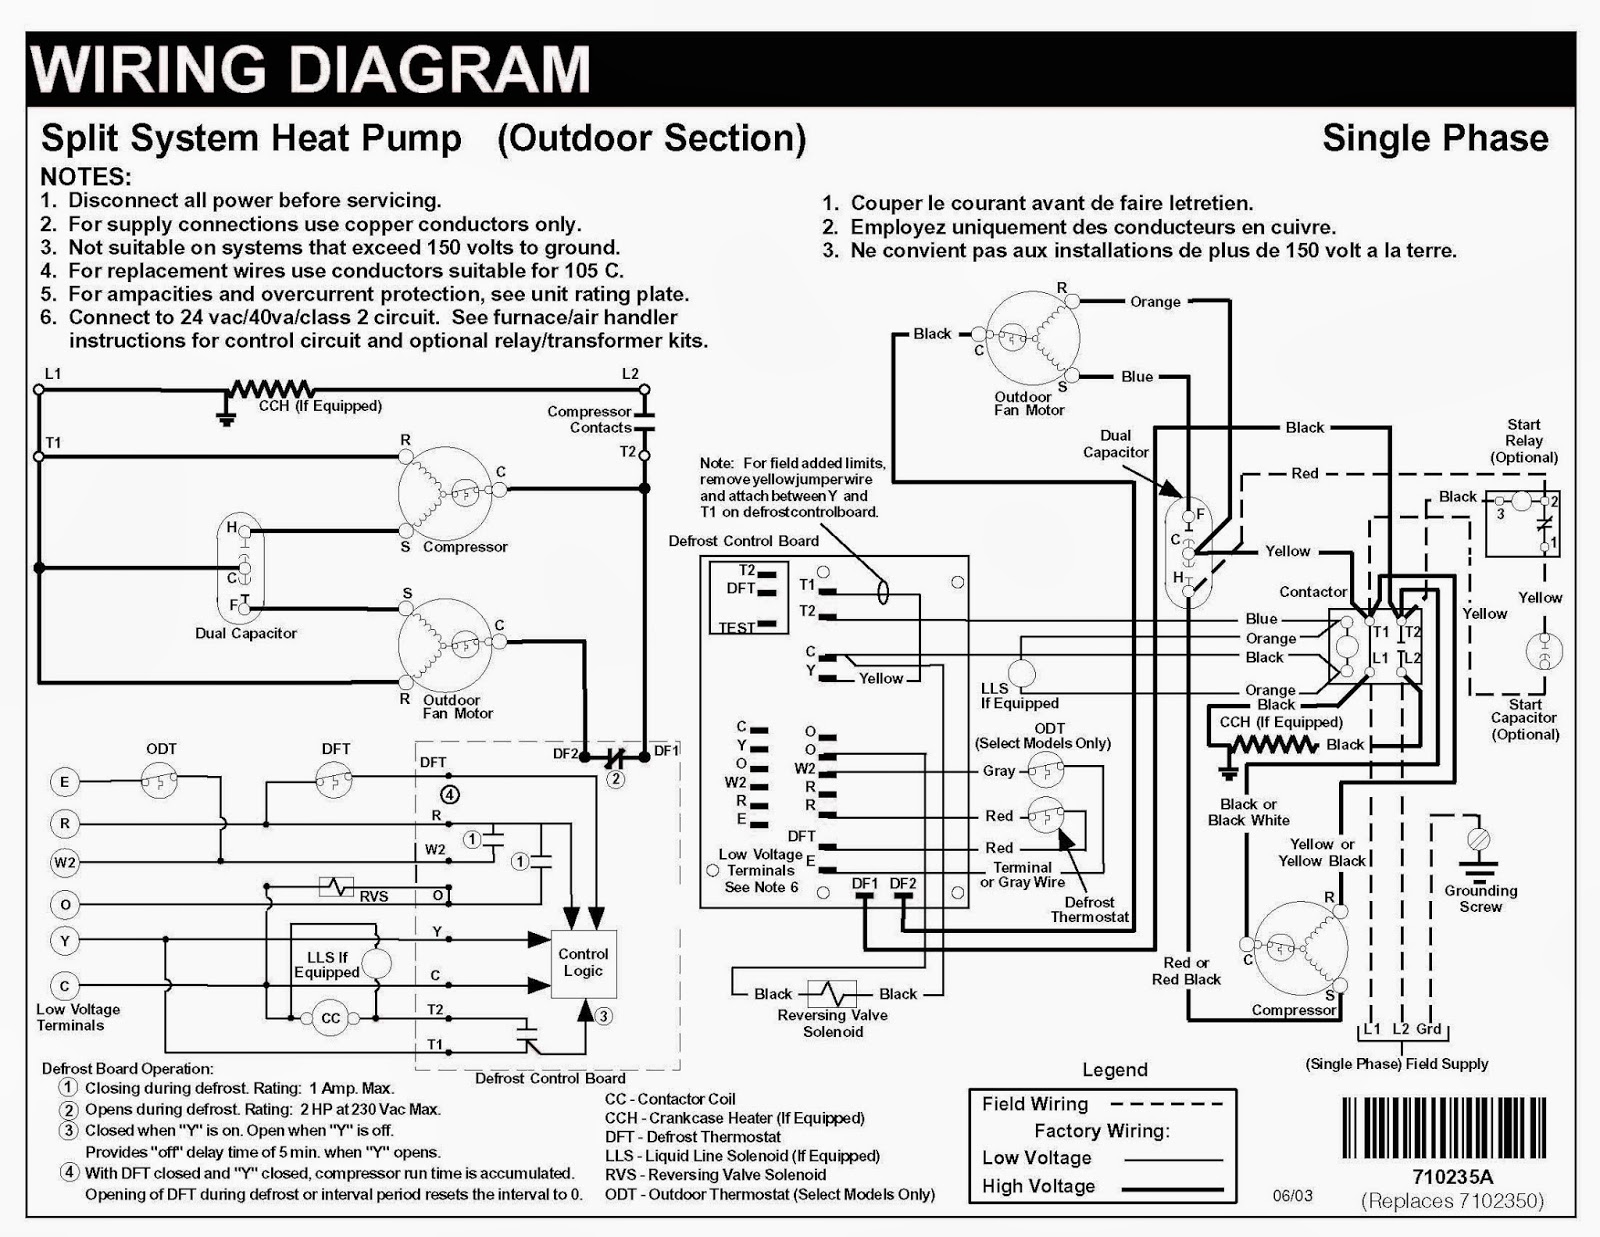 hvac wiring diagrams hvac image wiring wiring diagram of split ac wiring auto wiring diagram on hvac wiring diagrams